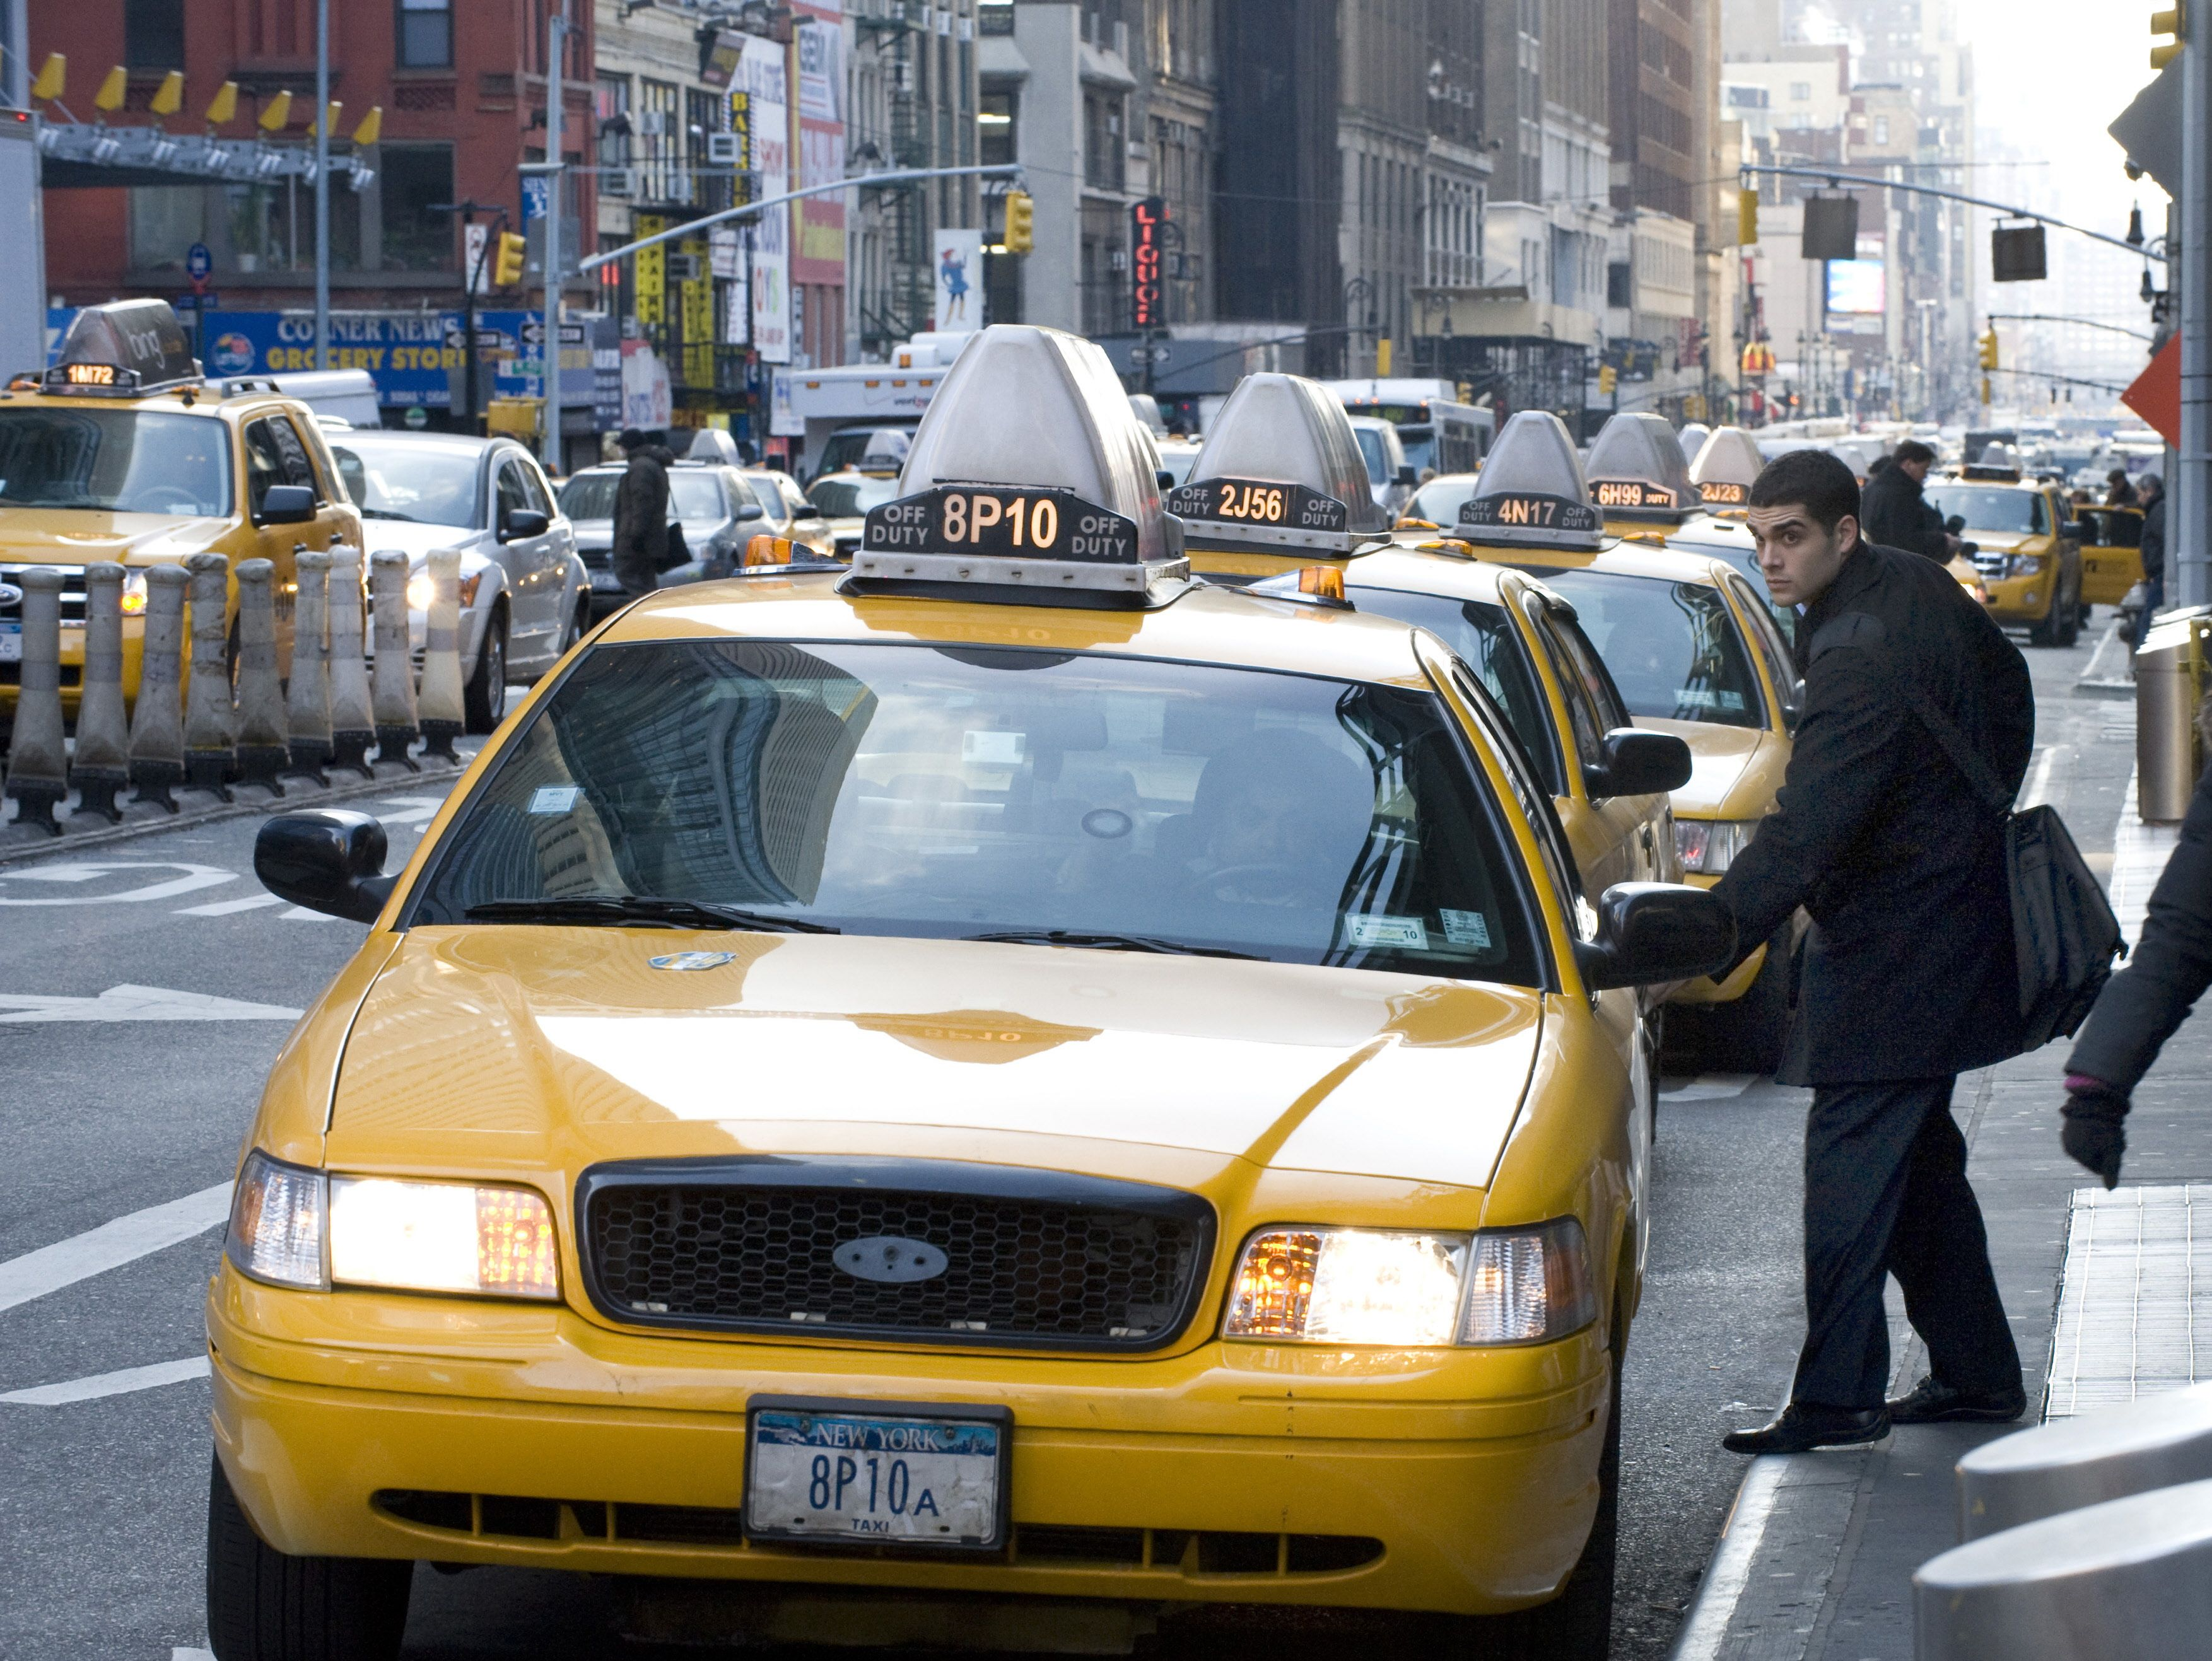 Taxi Medallions Were Just the Next Target for Bankers Who Learned Nothing from 2008